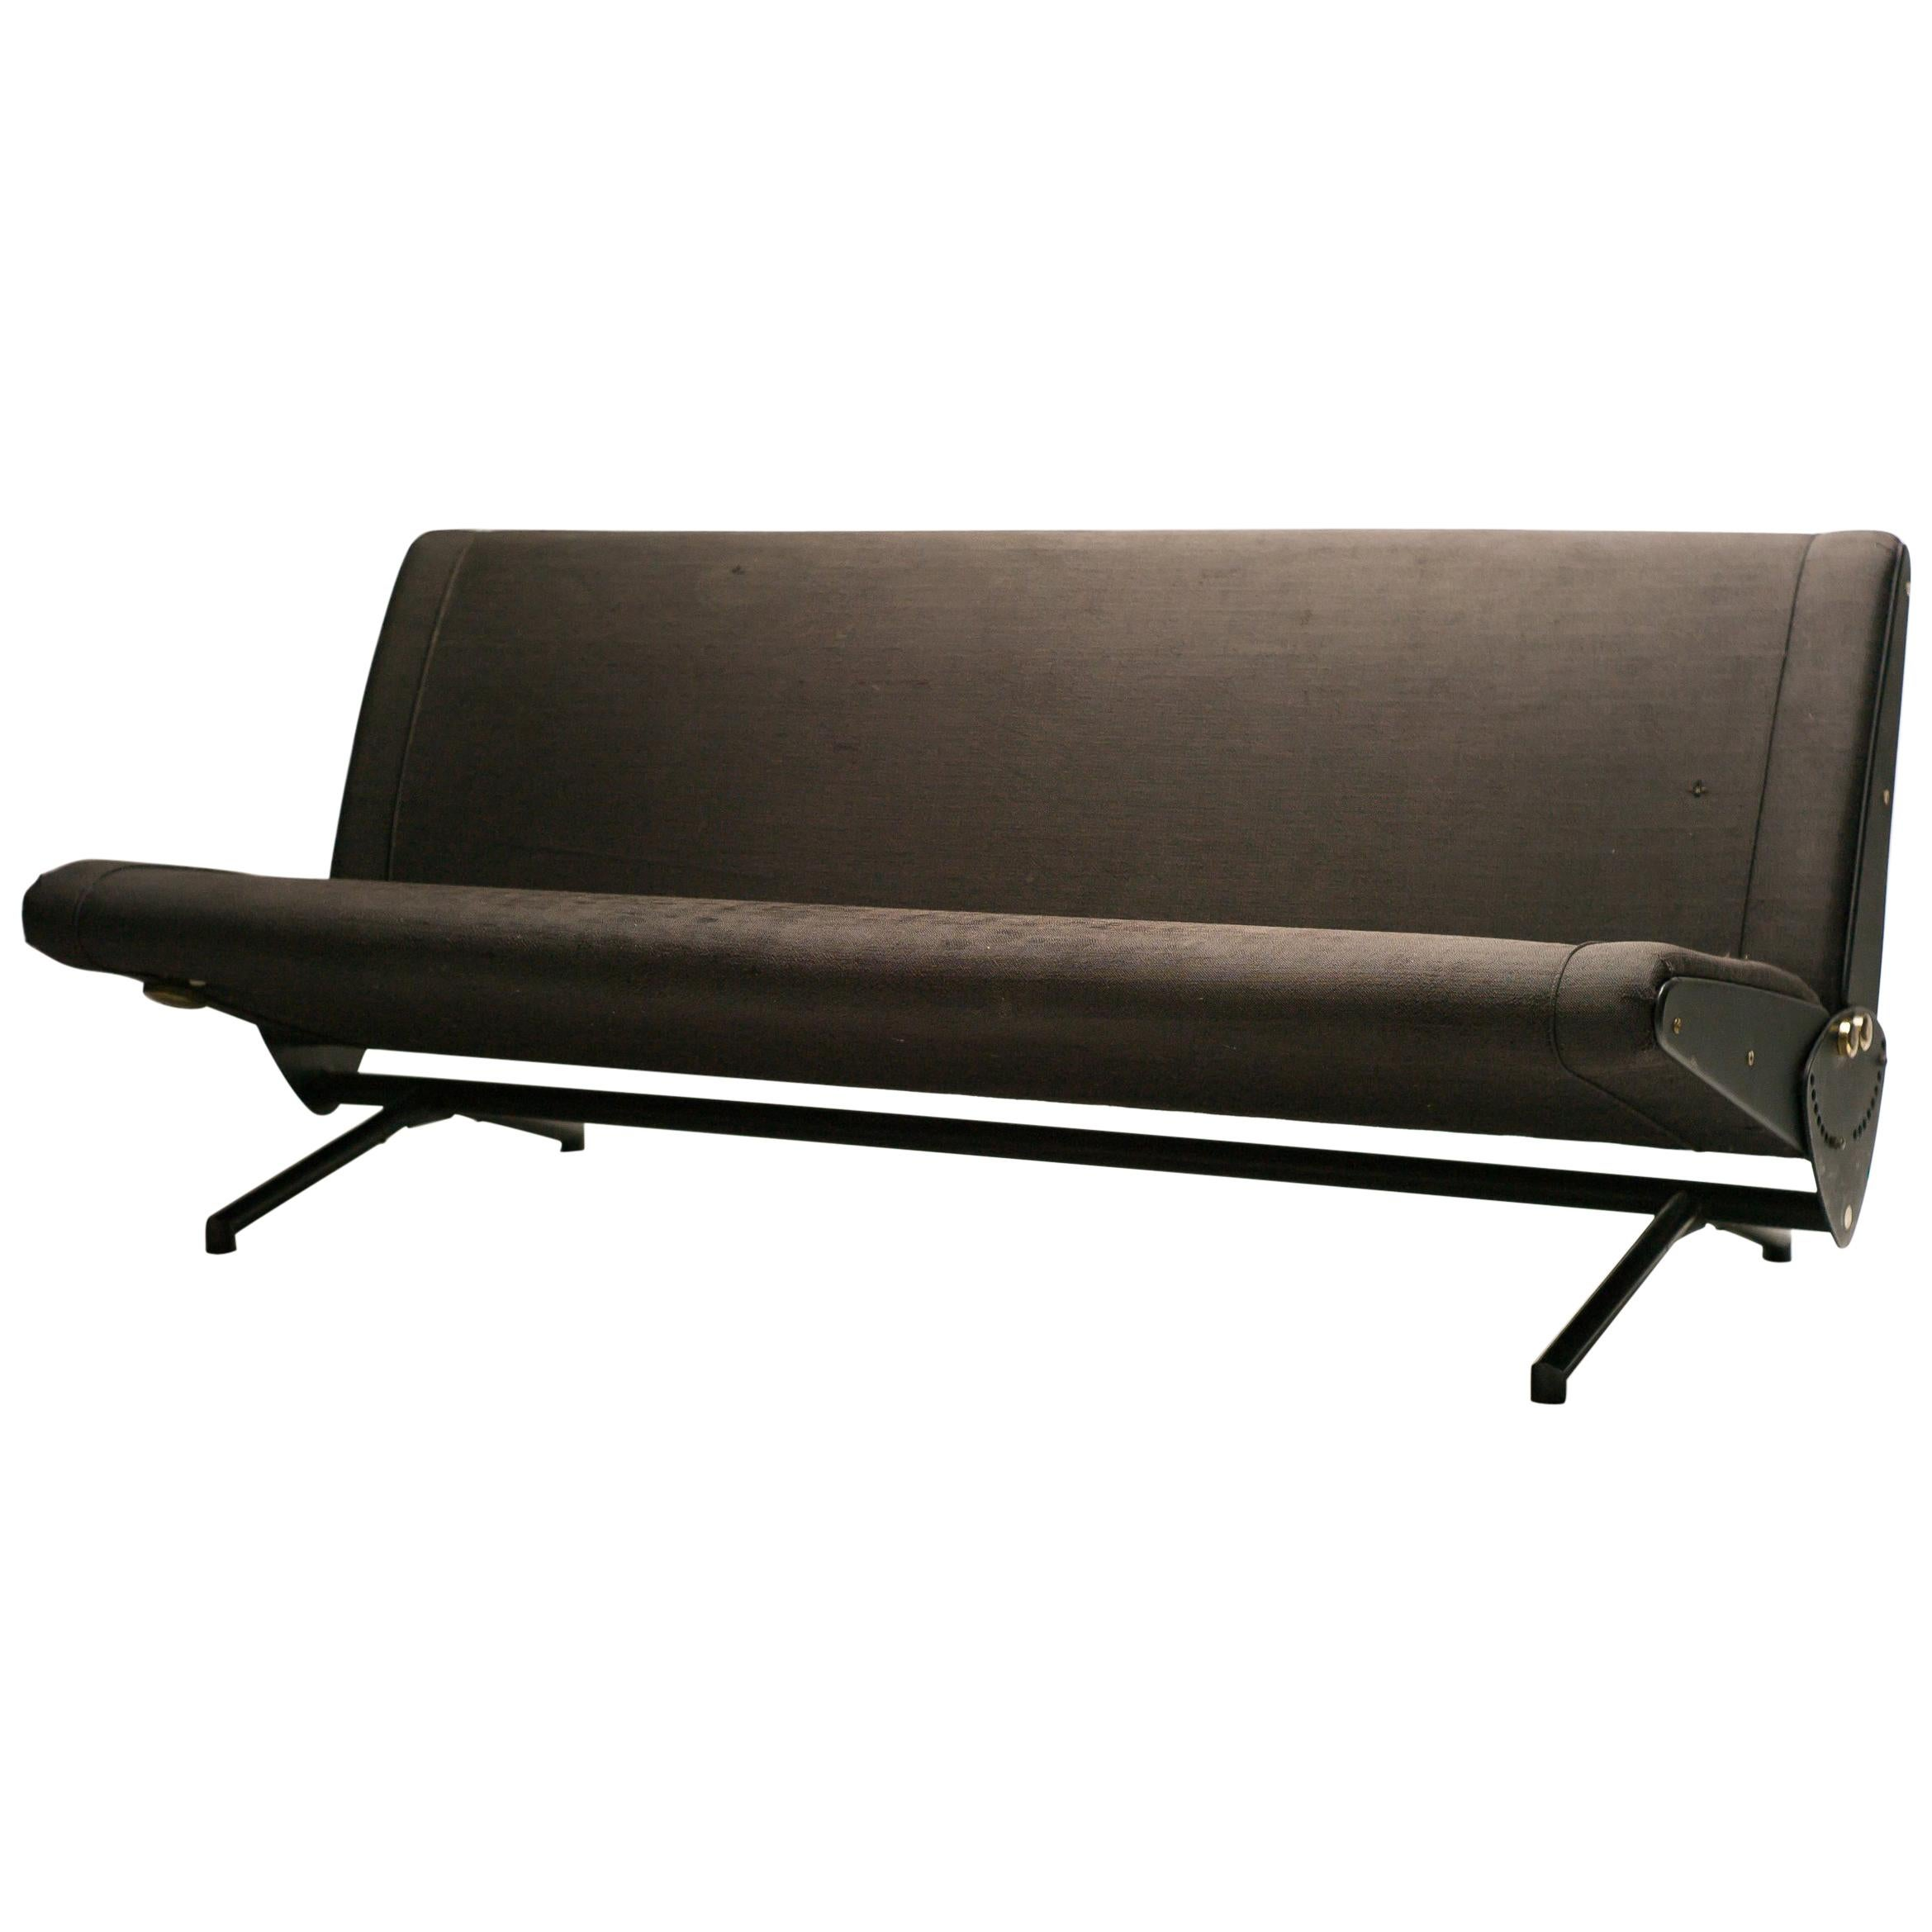 Futon Une Place Gerrit Thomas Rietveld Furniture Chairs Sofas Tables More